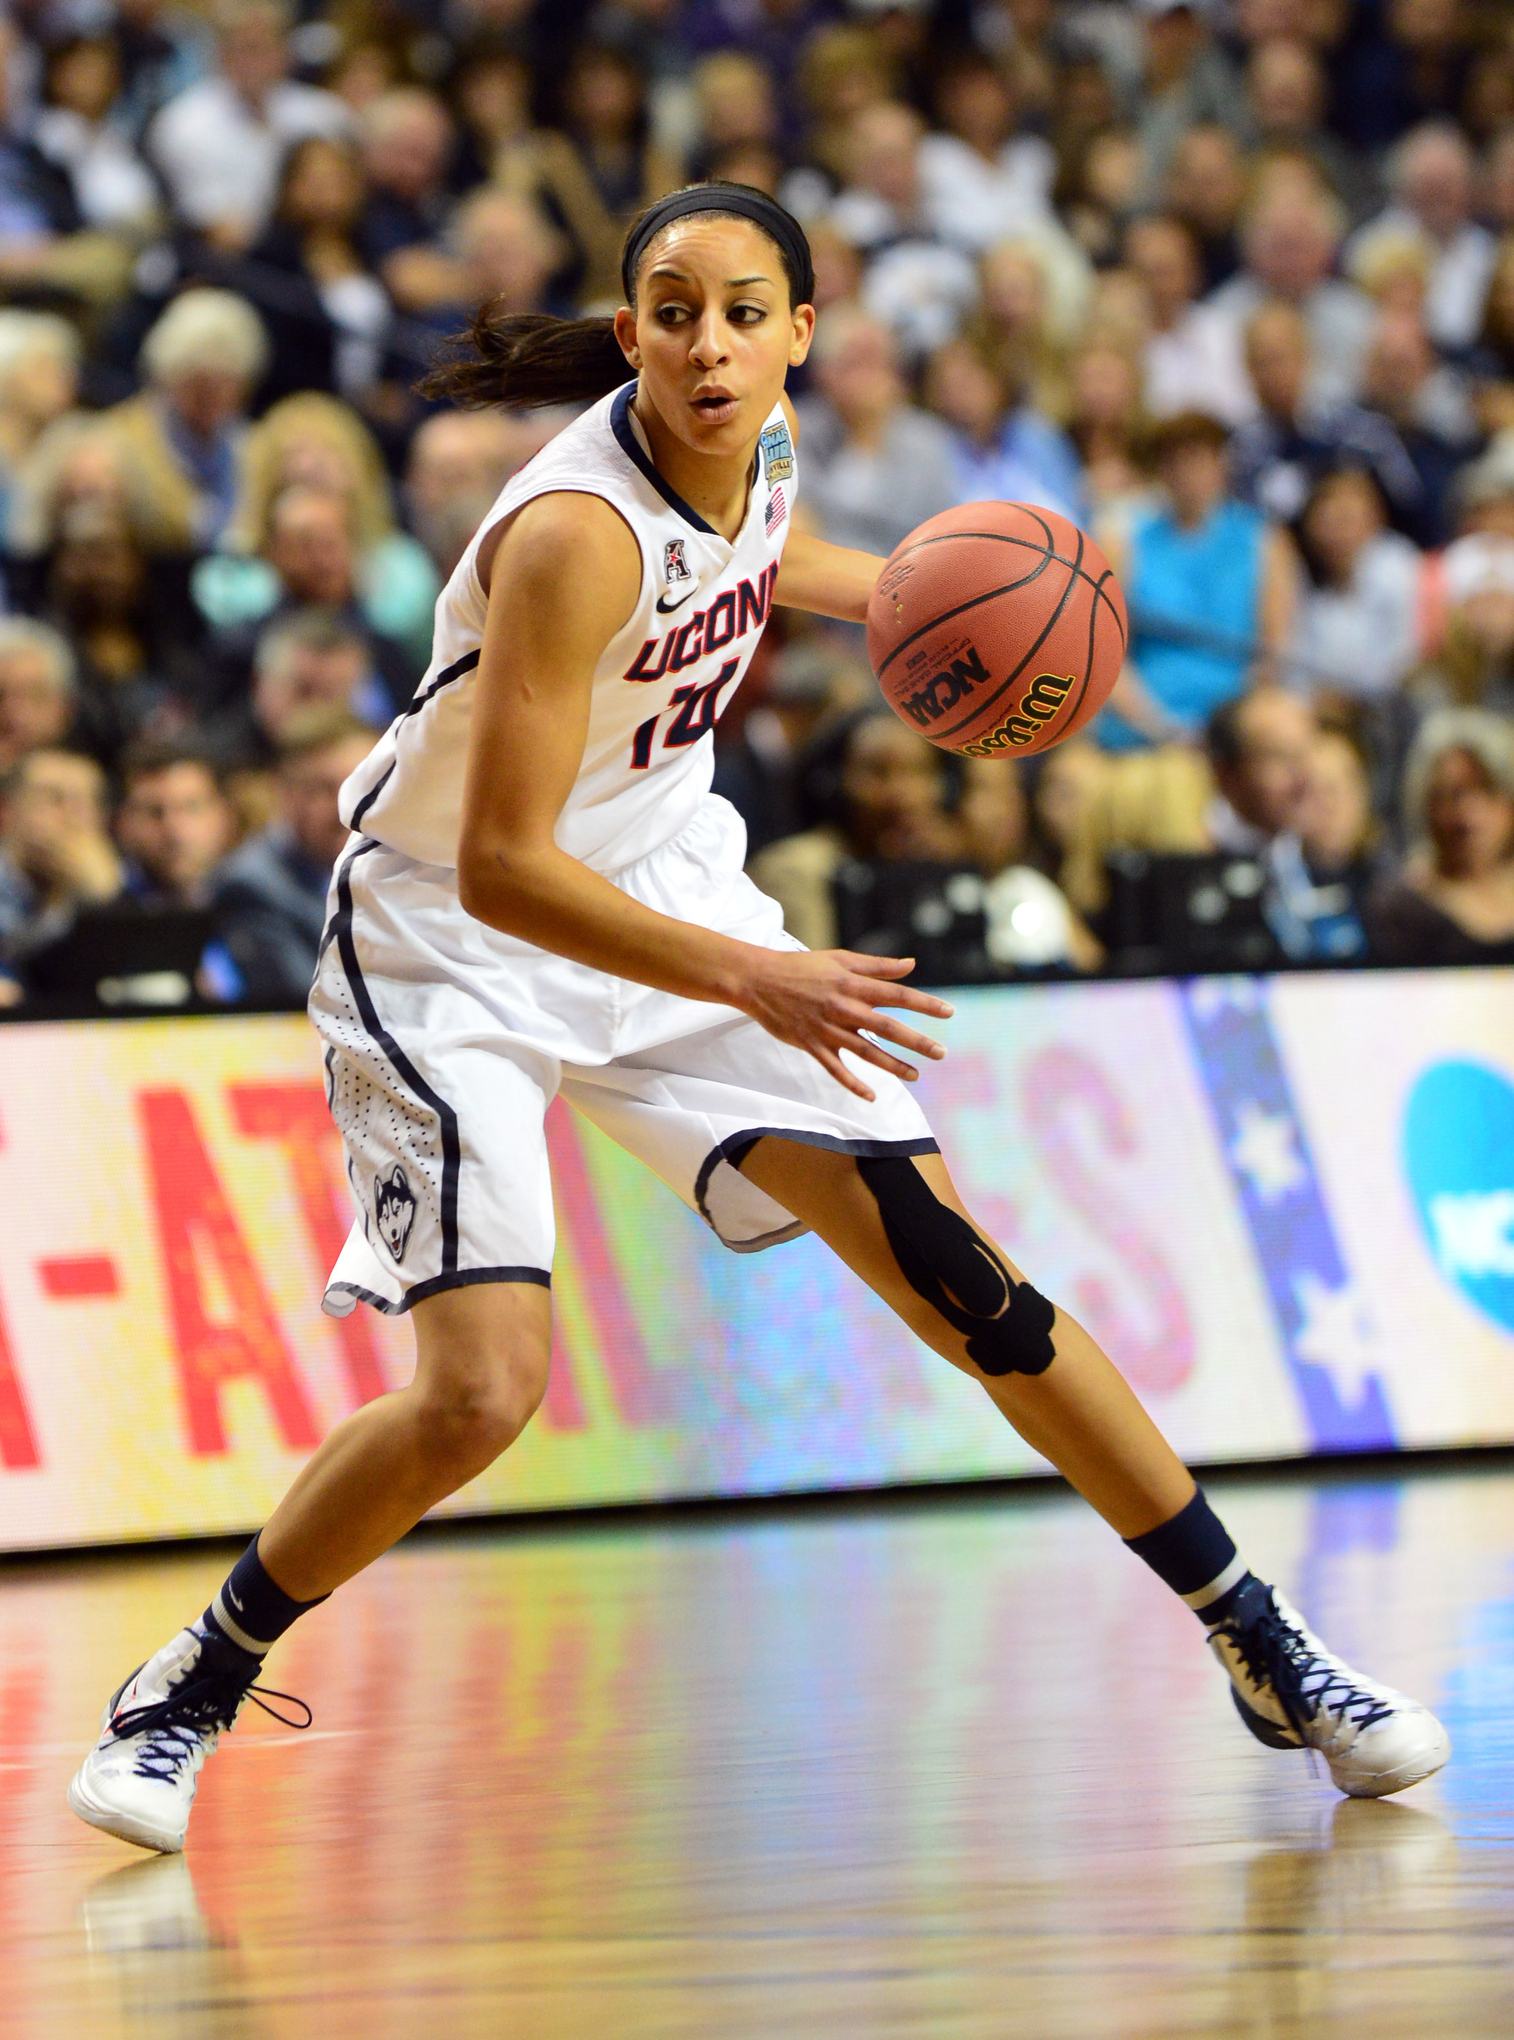 UConn's Bria Hartley had a great senior year, but perhaps a bit of an uncertain future.